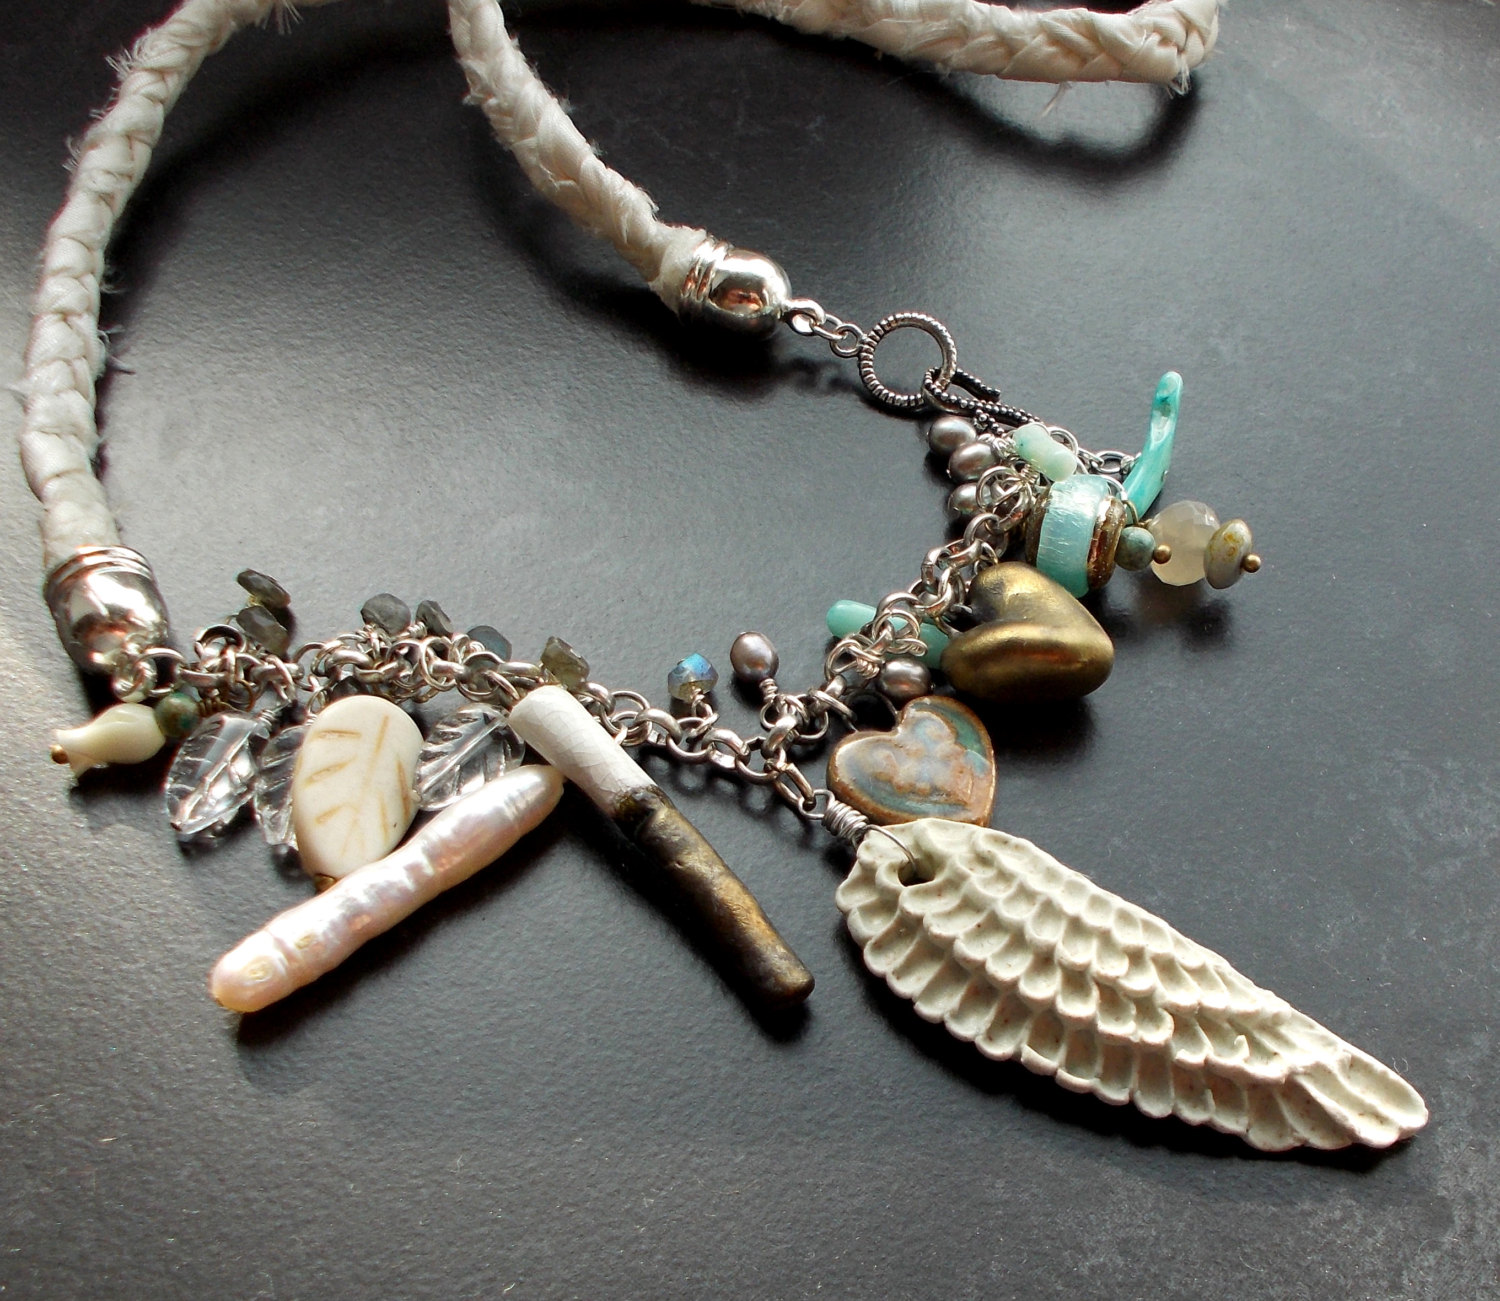 https://www.etsy.com/listing/191351350/bohemian-bride-angel-wing-necklace-with?ref=shop_home_feat_1